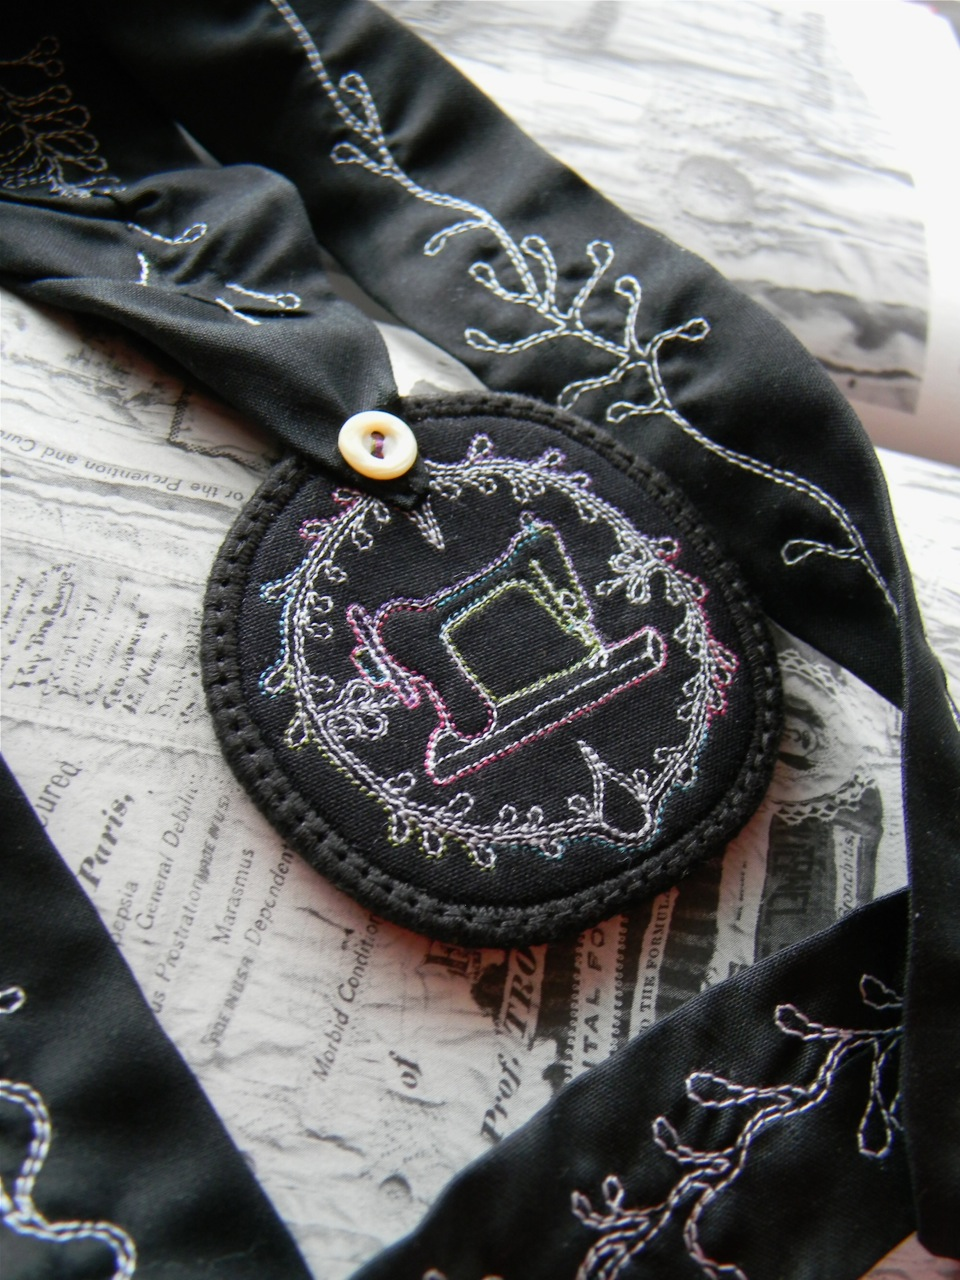 sewing machine medallion necklace2